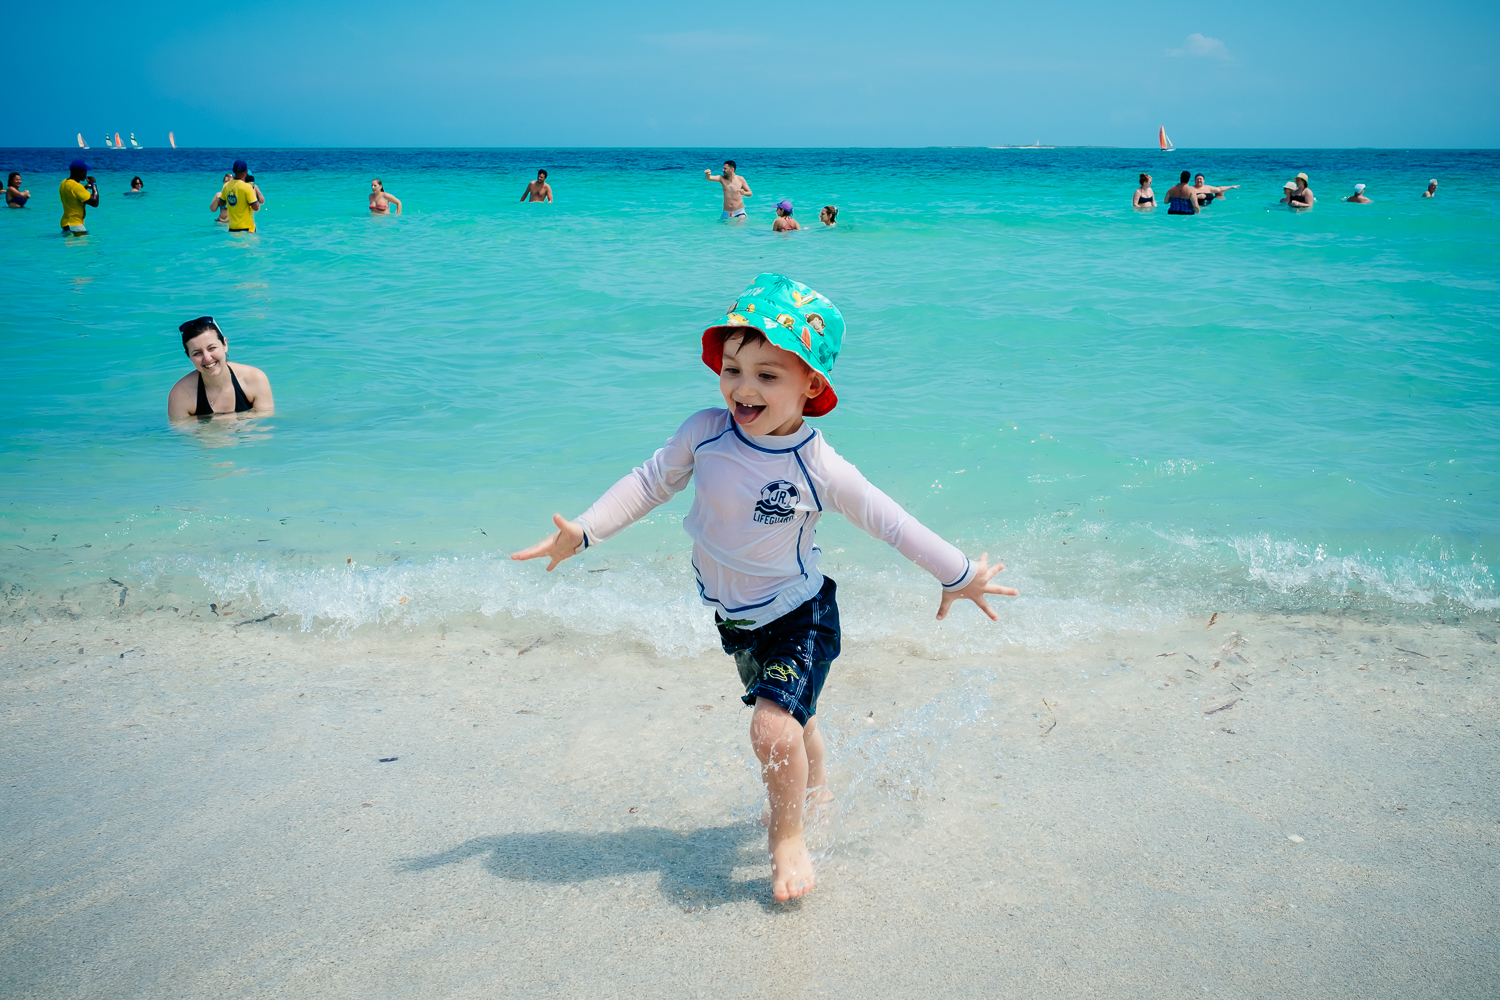 My son playing on the beach in Varadero, Cuba 2015.